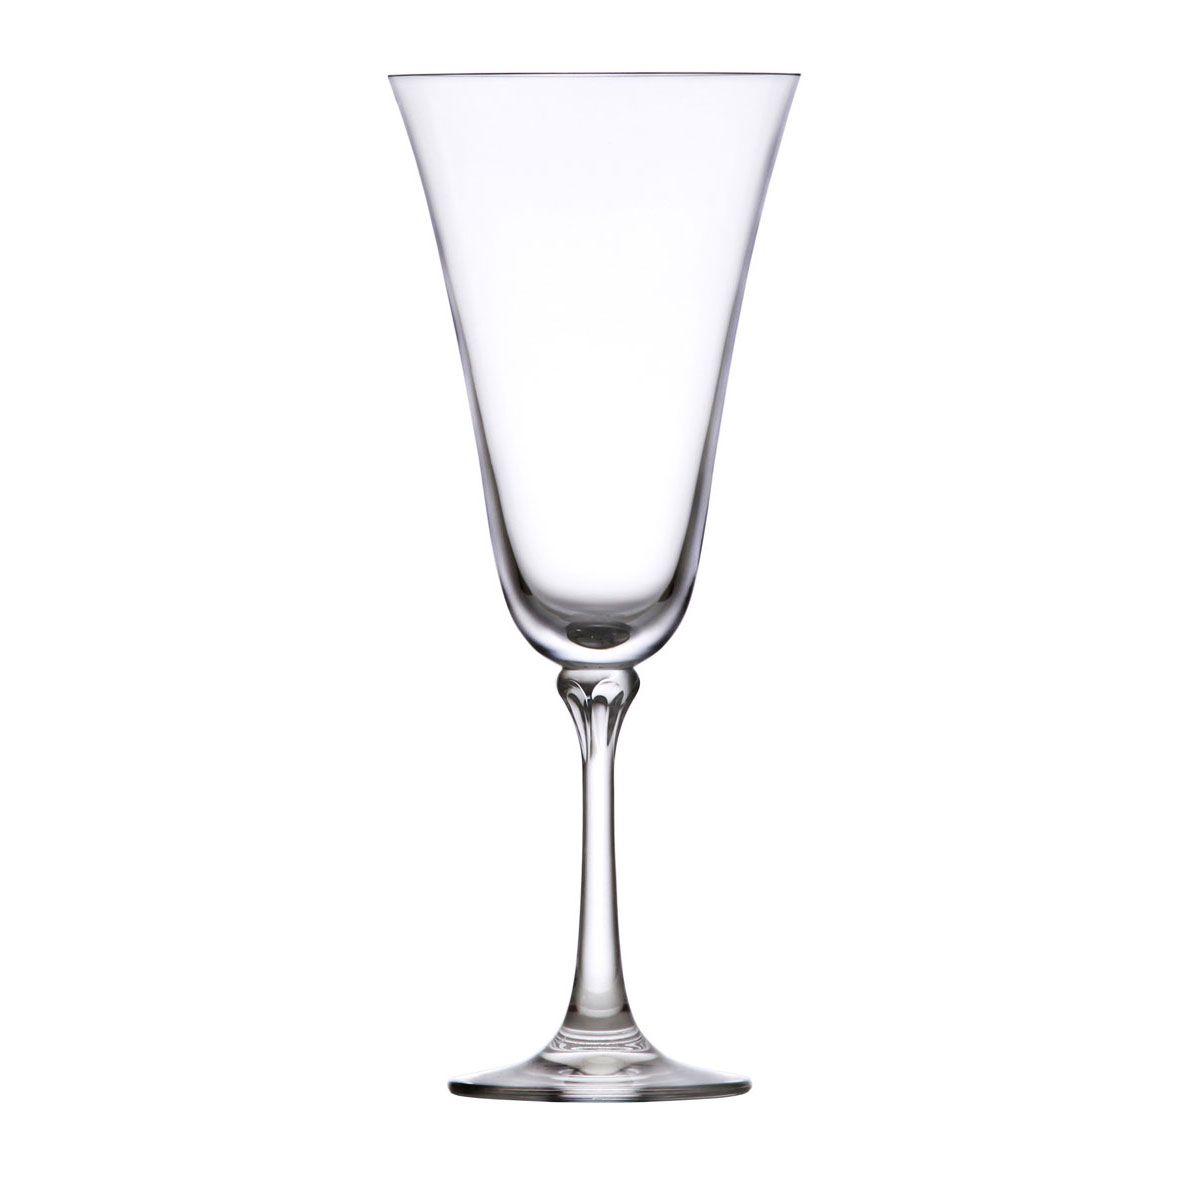 Schott Zwiesel Tritan Crystal, Charlotte Crystal Red Wine Glass, Single